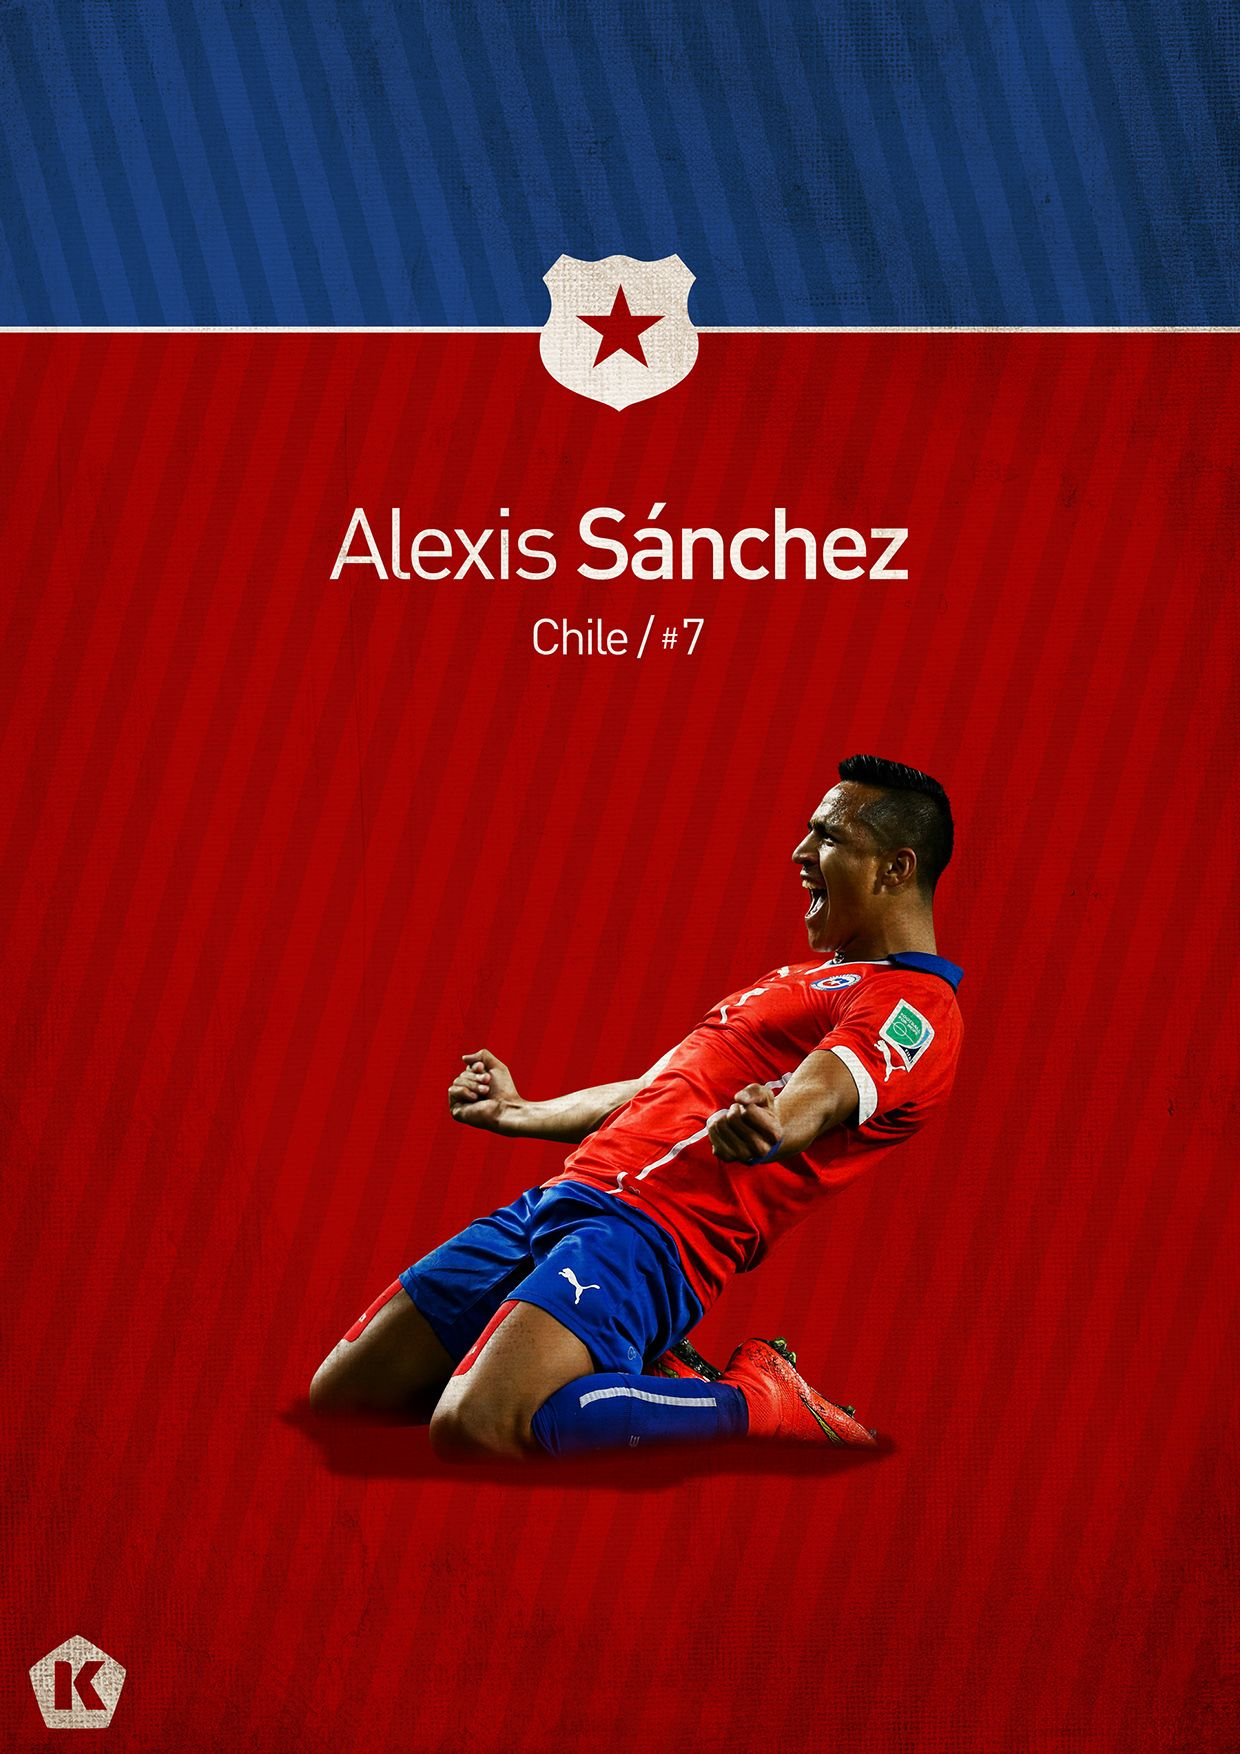 Alexis S - Chile.